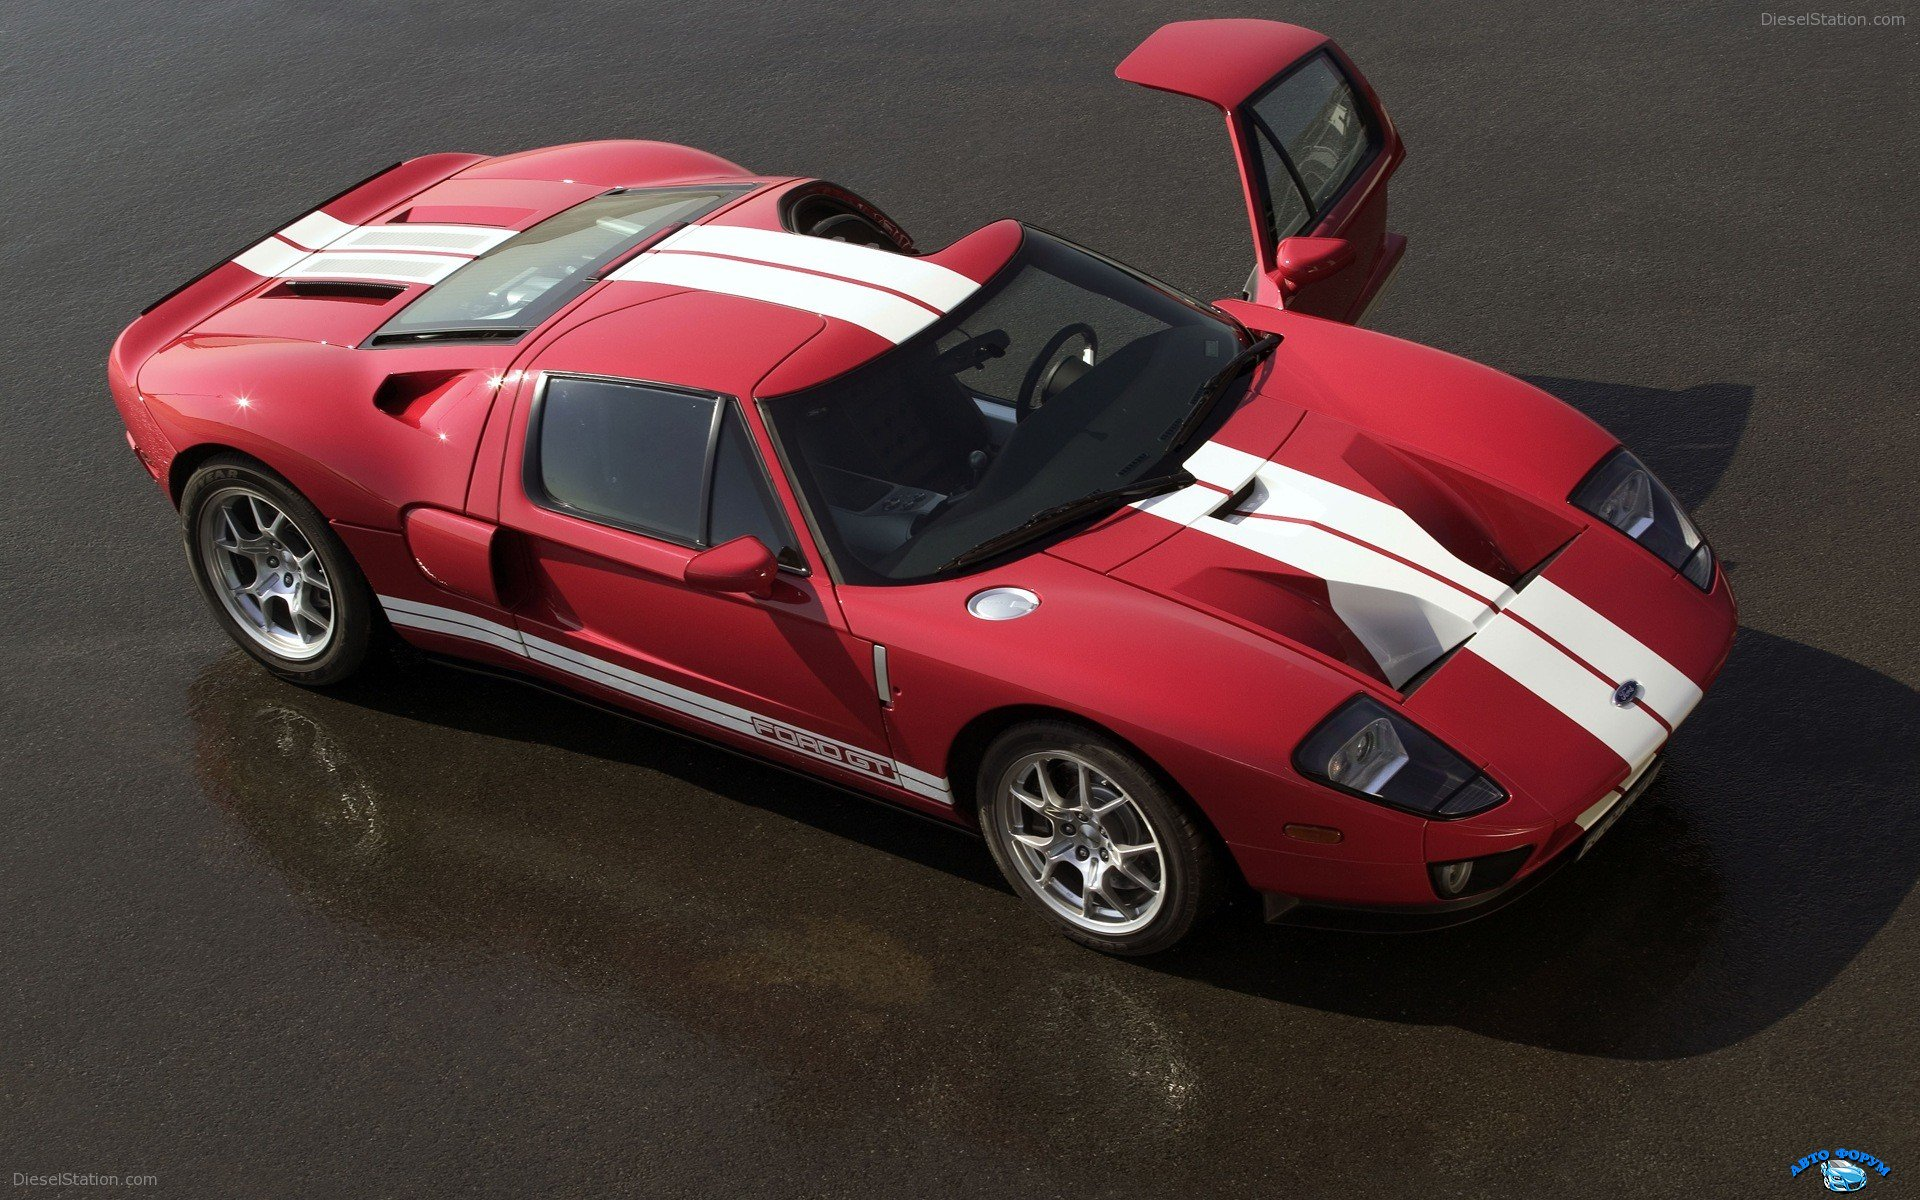 Ford-GT-widescreen-044.jpg